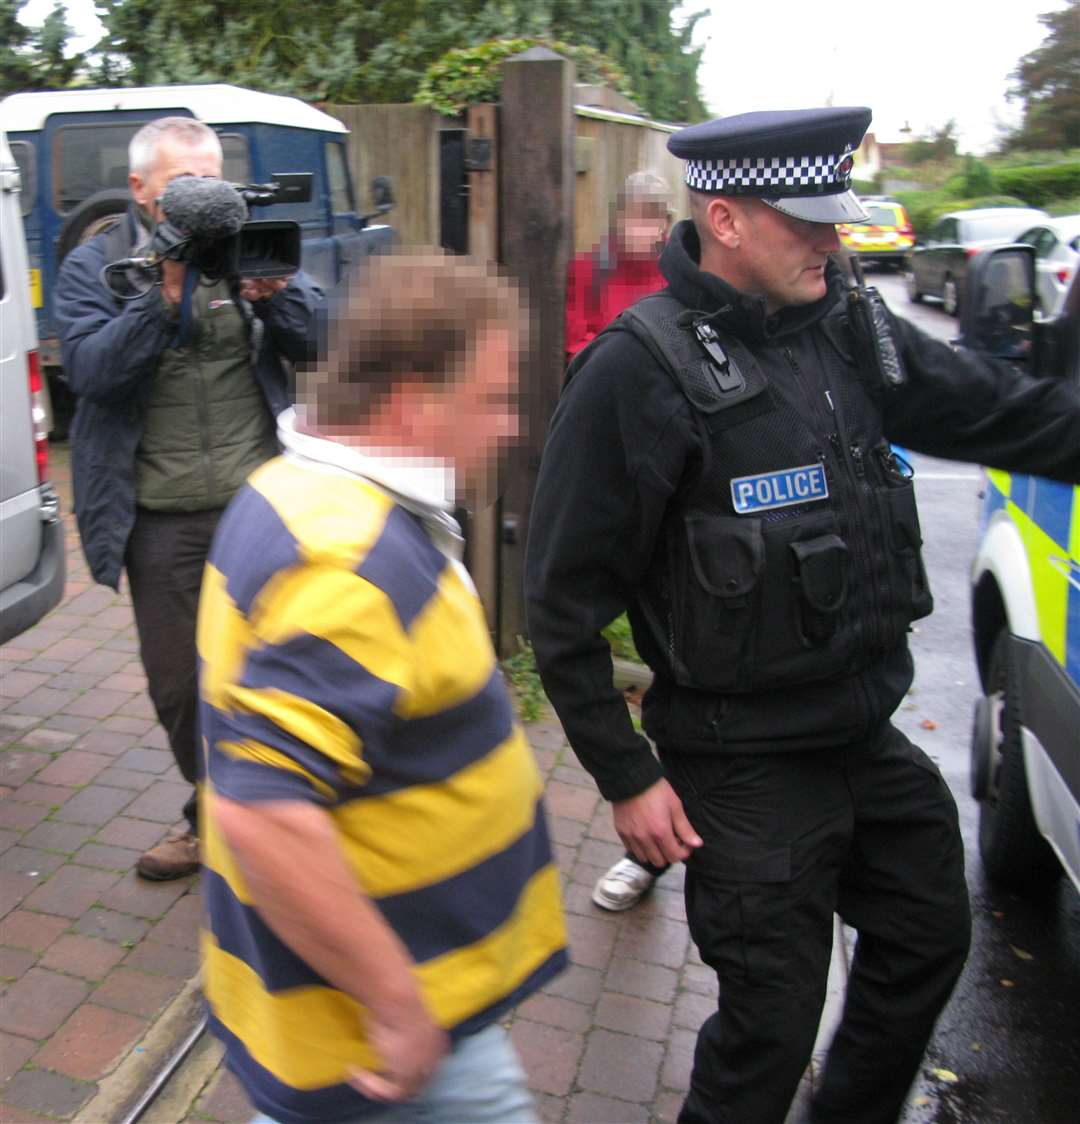 Darrell Houghton being arrested by police during the raid in 2012. No criminal charges were brought in England